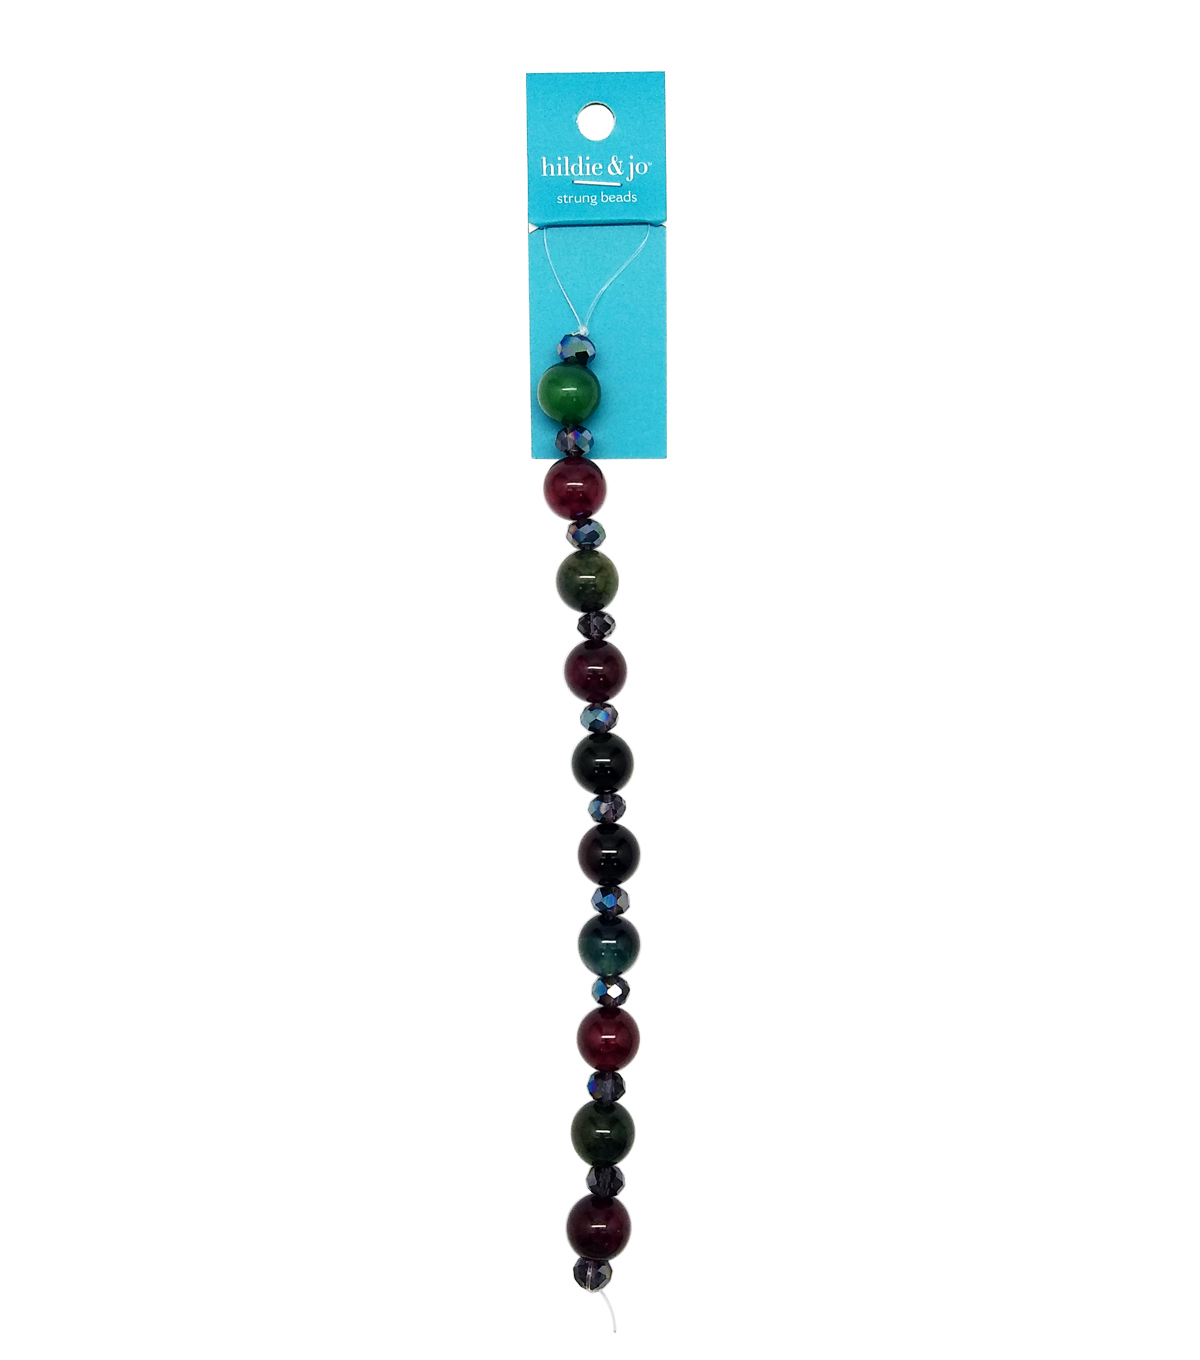 hildie & jo™ 12 mm Round Strung Beads-Assorted Colors